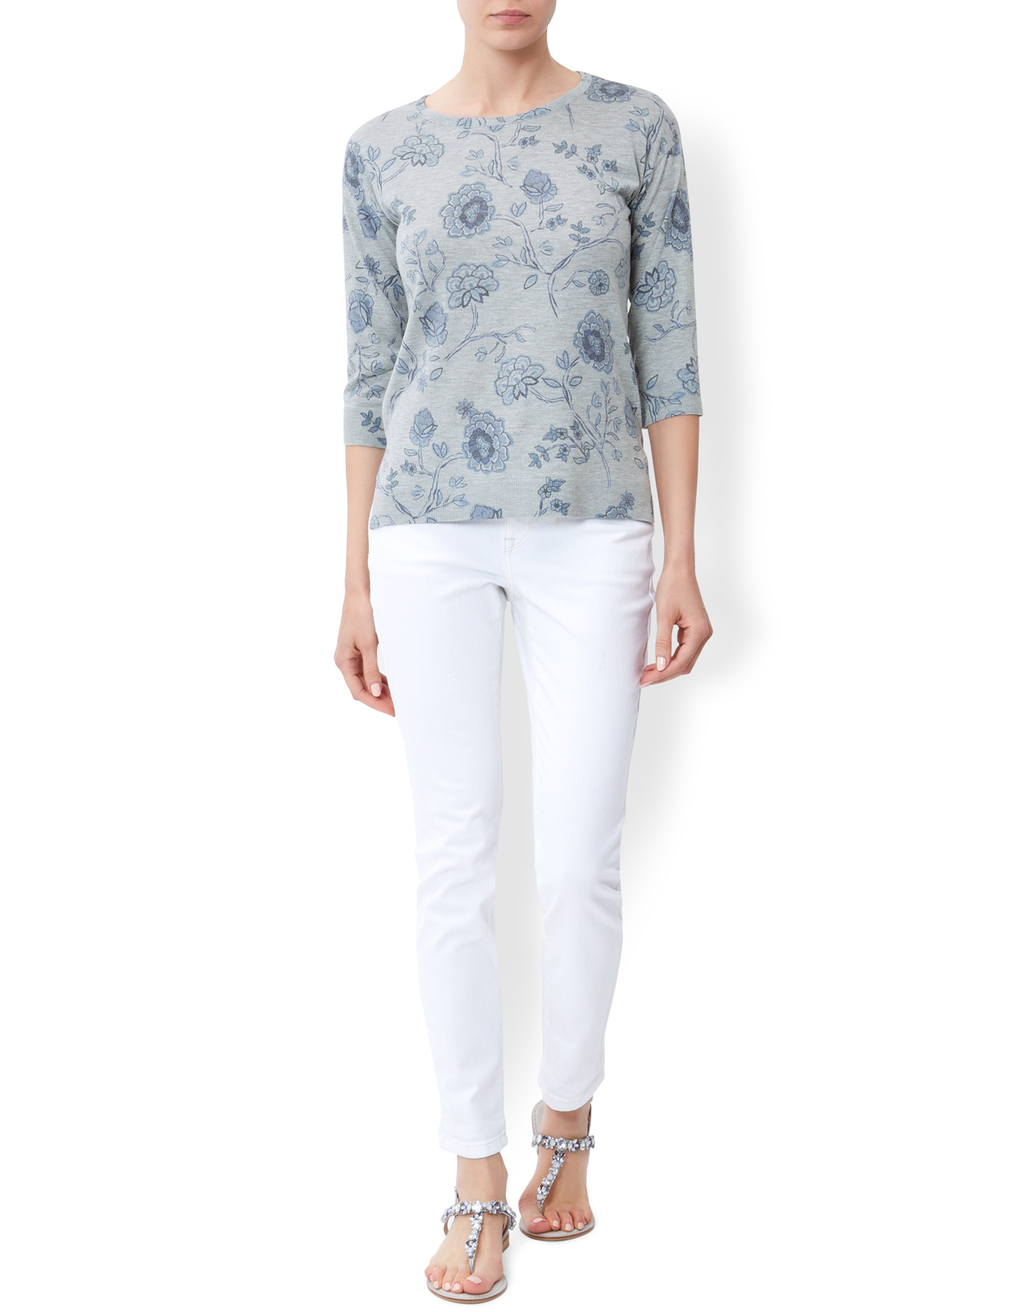 Felicity Printed Jumper - style: standard; predominant colour: pale blue; occasions: casual; length: standard; fibres: polyester/polyamide - mix; fit: slim fit; neckline: crew; sleeve length: 3/4 length; sleeve style: standard; texture group: knits/crochet; pattern type: knitted - fine stitch; pattern: florals; pattern size: big & busy (top); season: s/s 2016; wardrobe: highlight